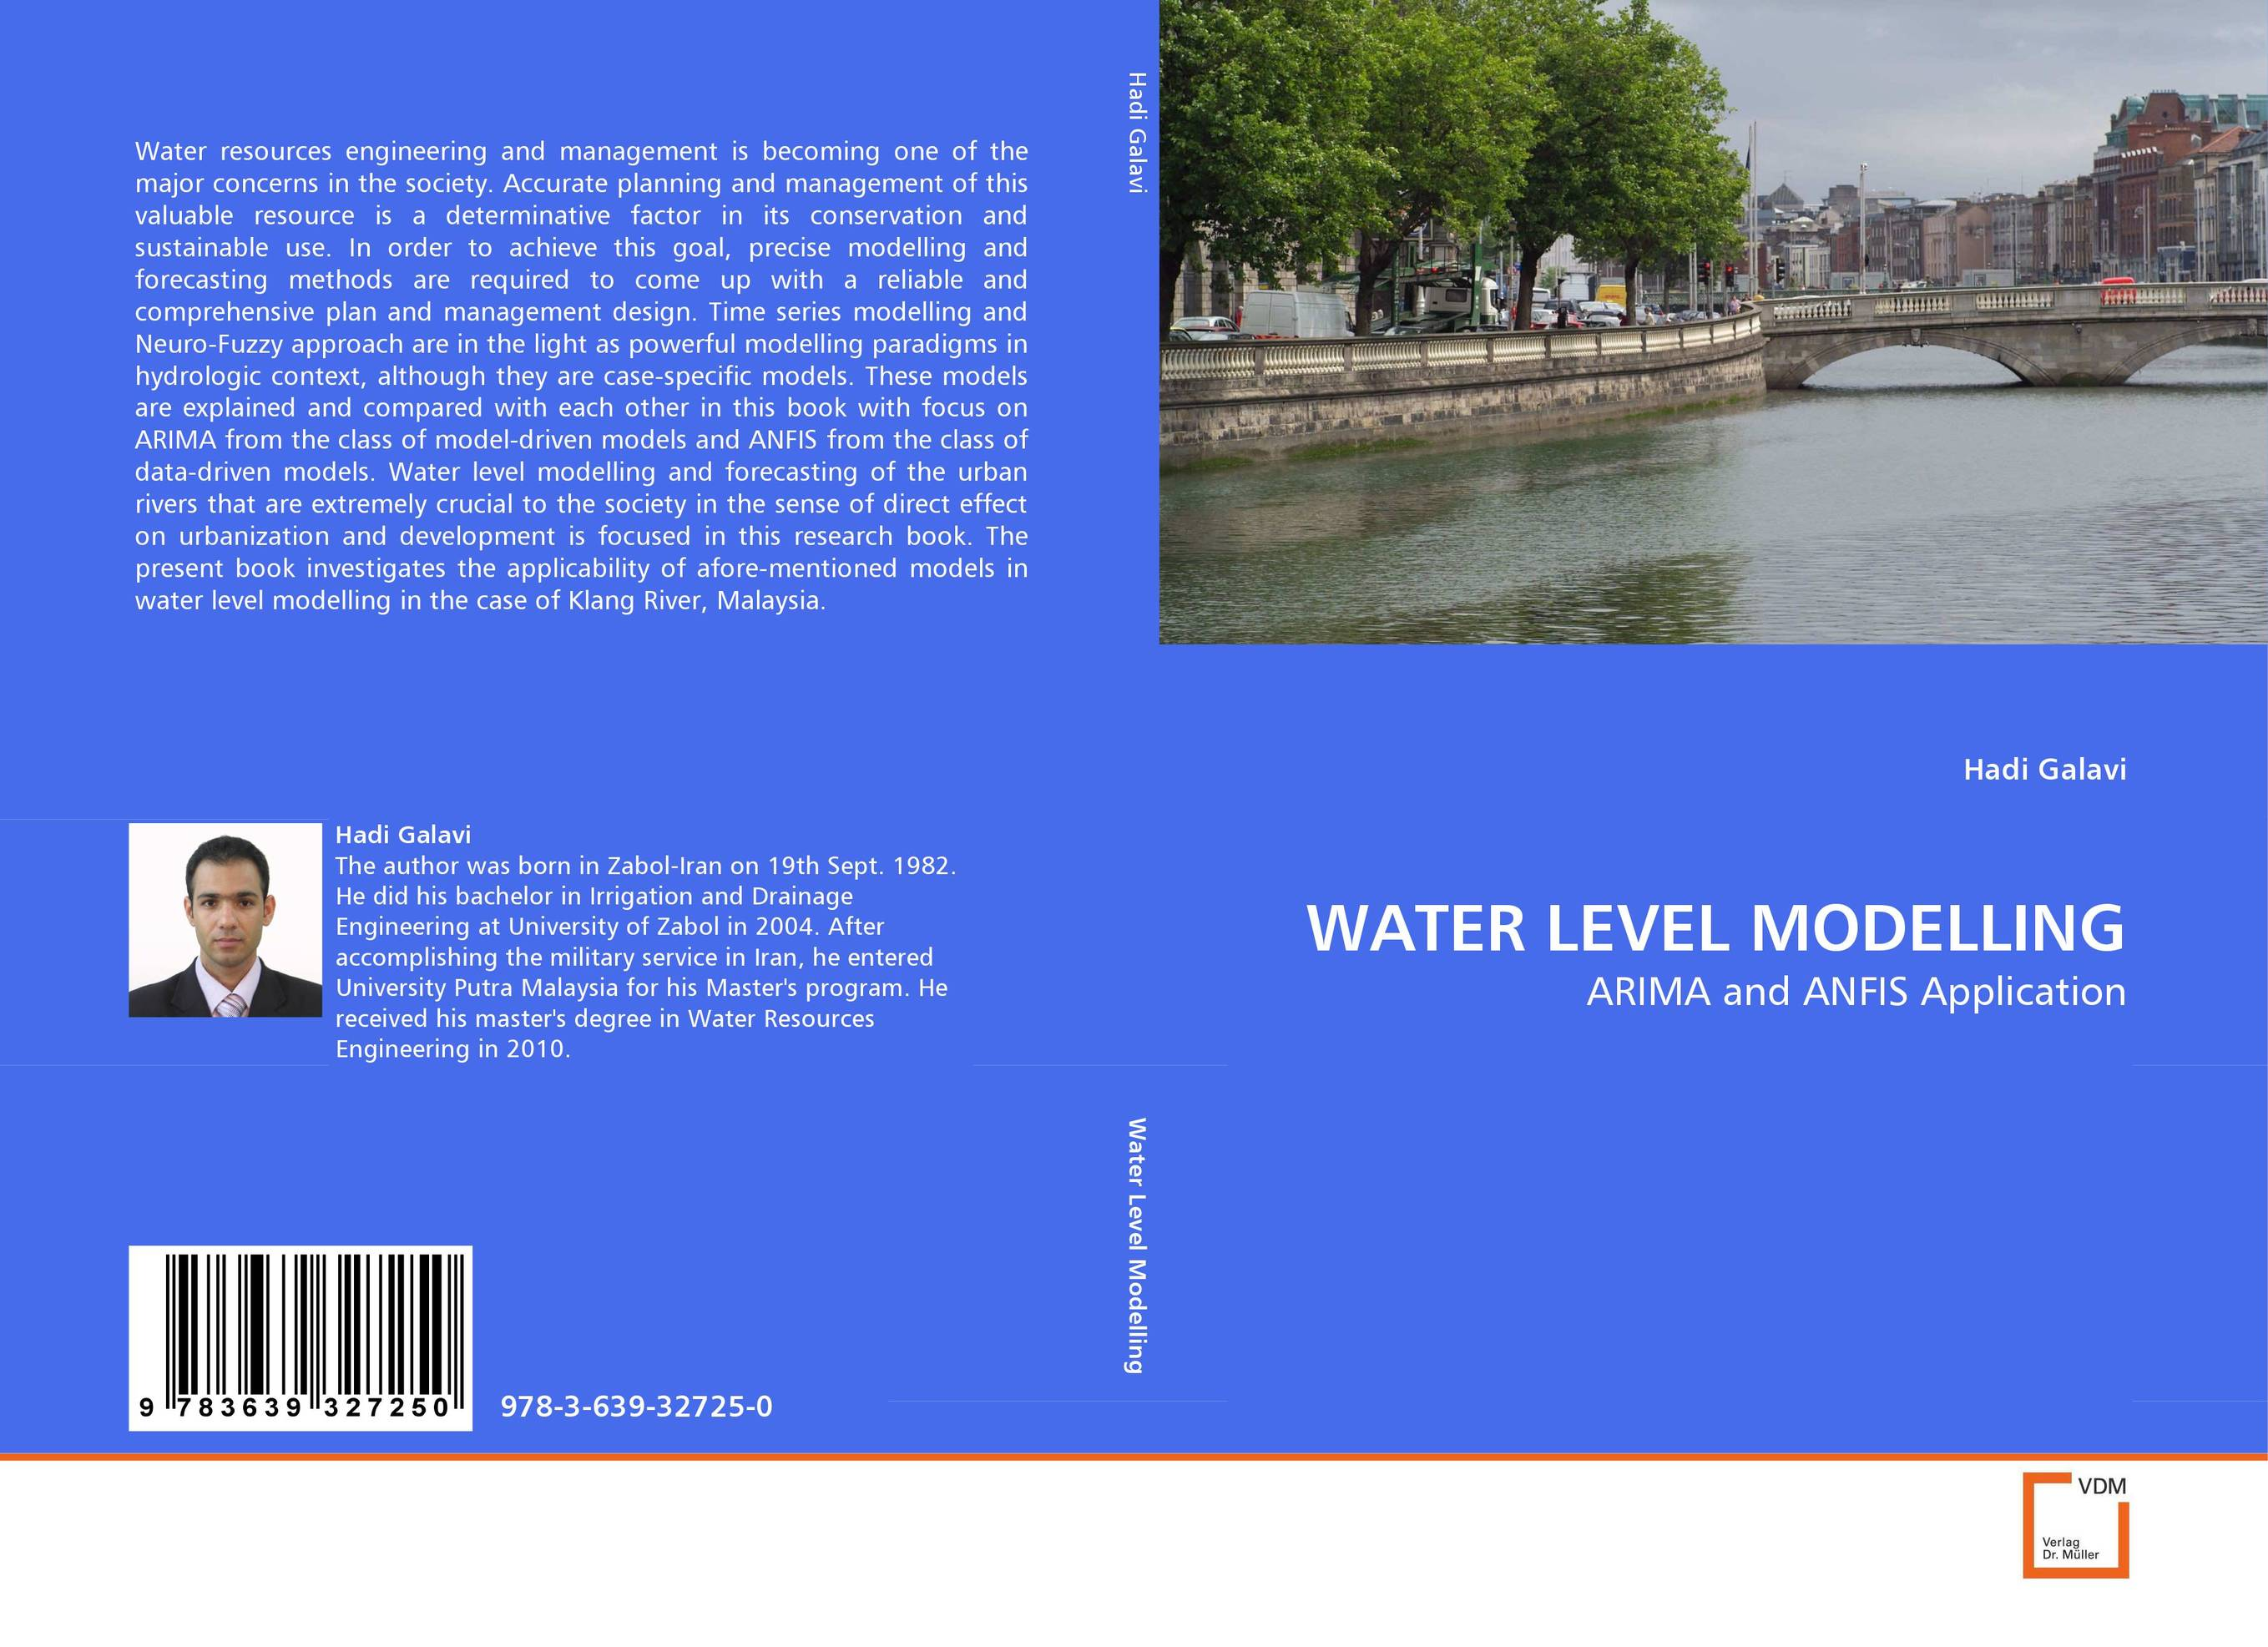 WATER LEVEL MODELLING driven to distraction